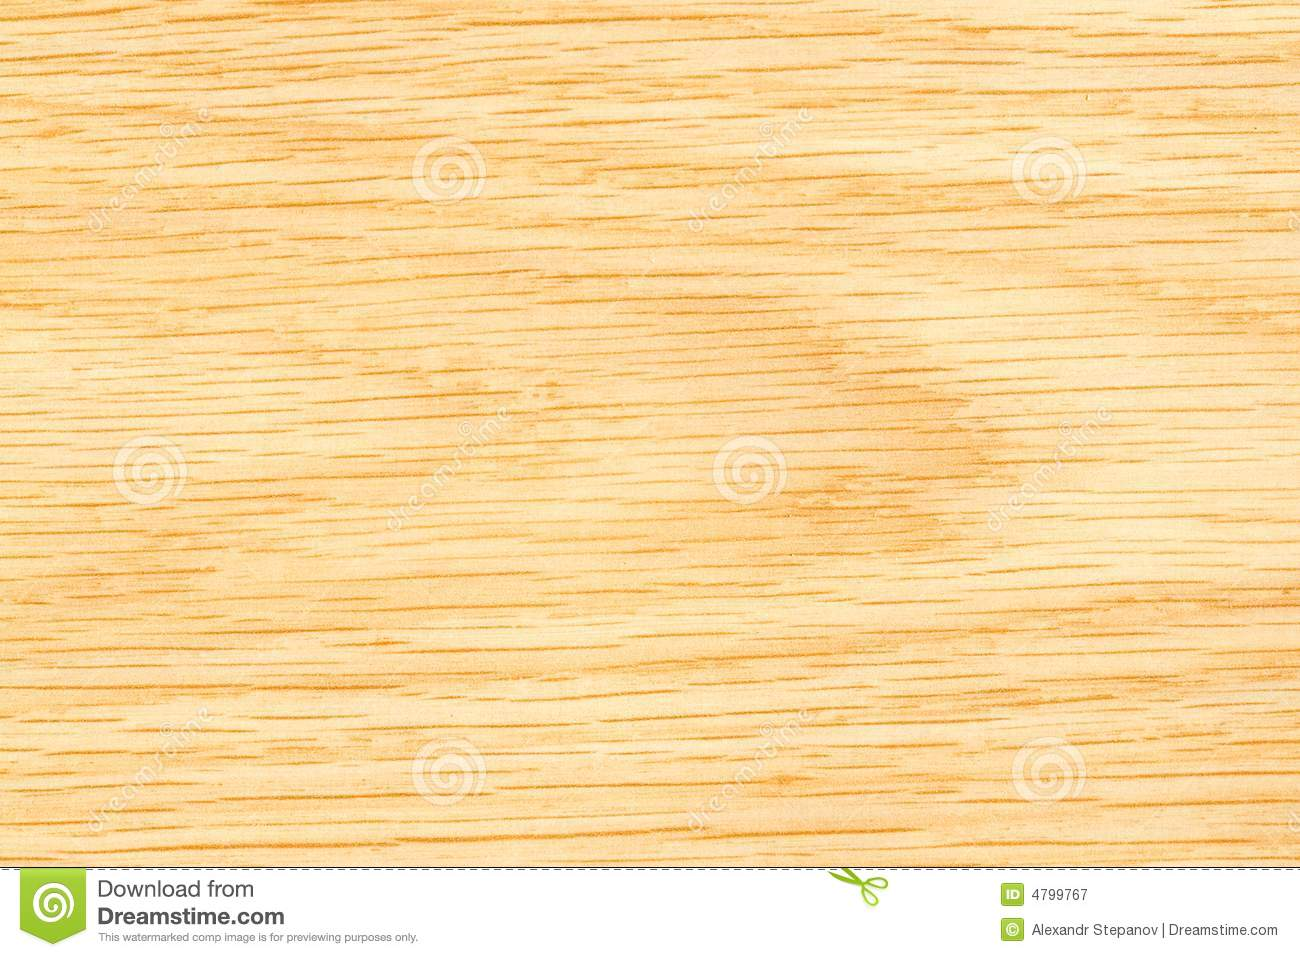 Wood Texture Stock Image Image Of Smooth Tree Parquet